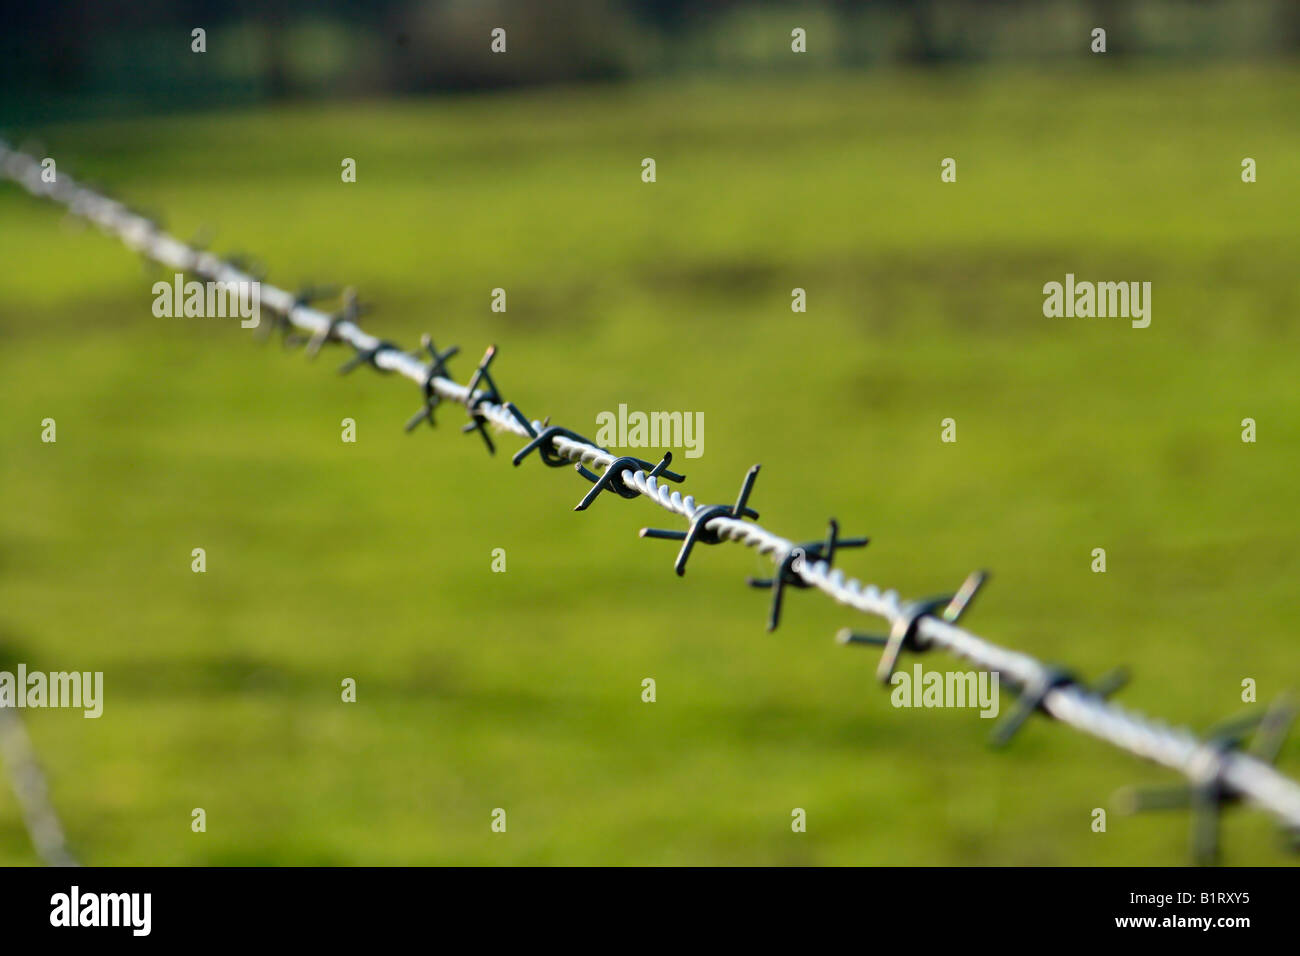 Barbedwire, barbwire - Stock Image